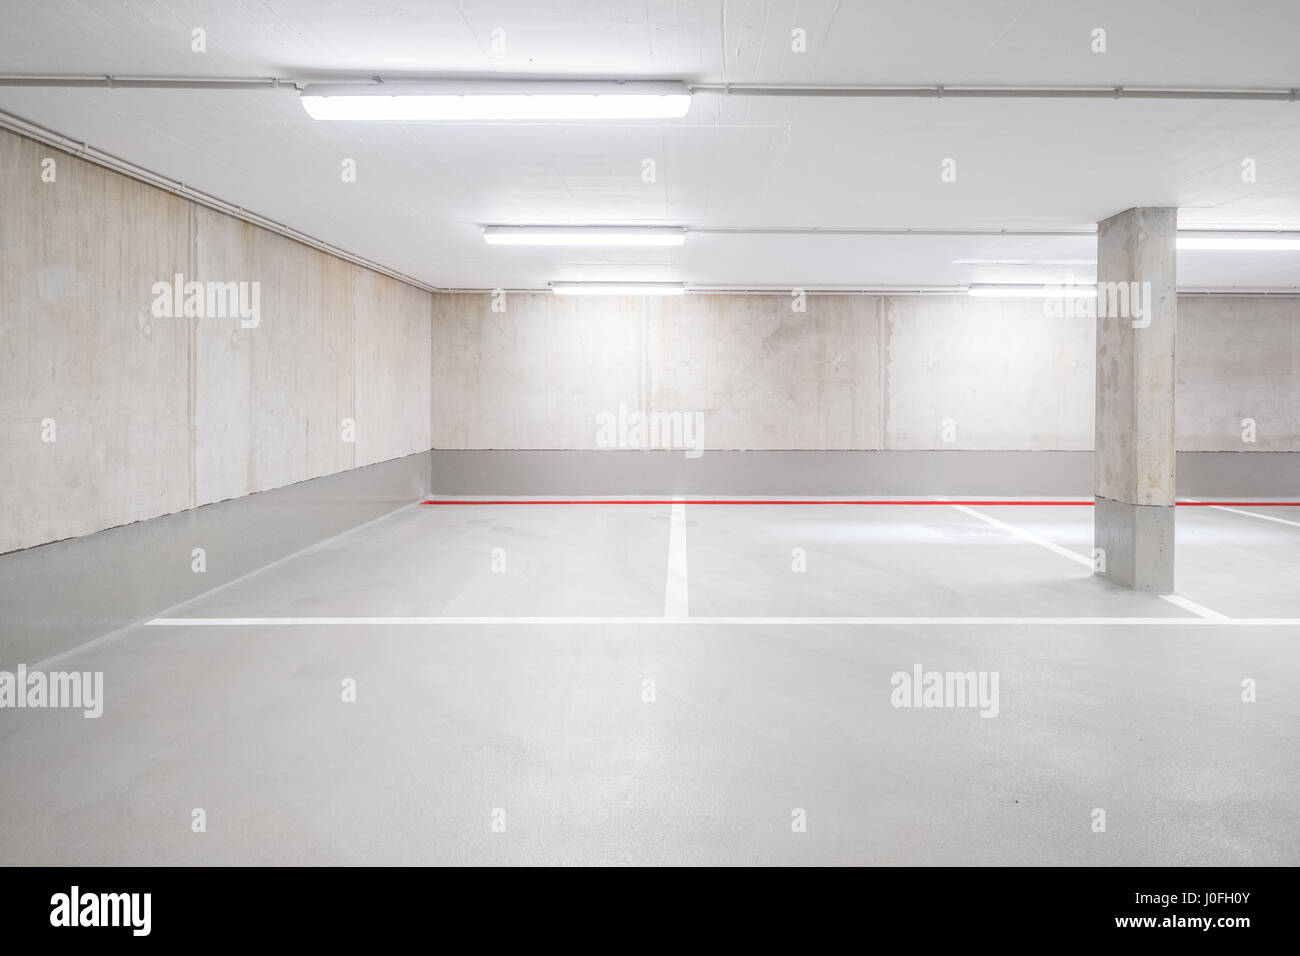 underground car parking deck